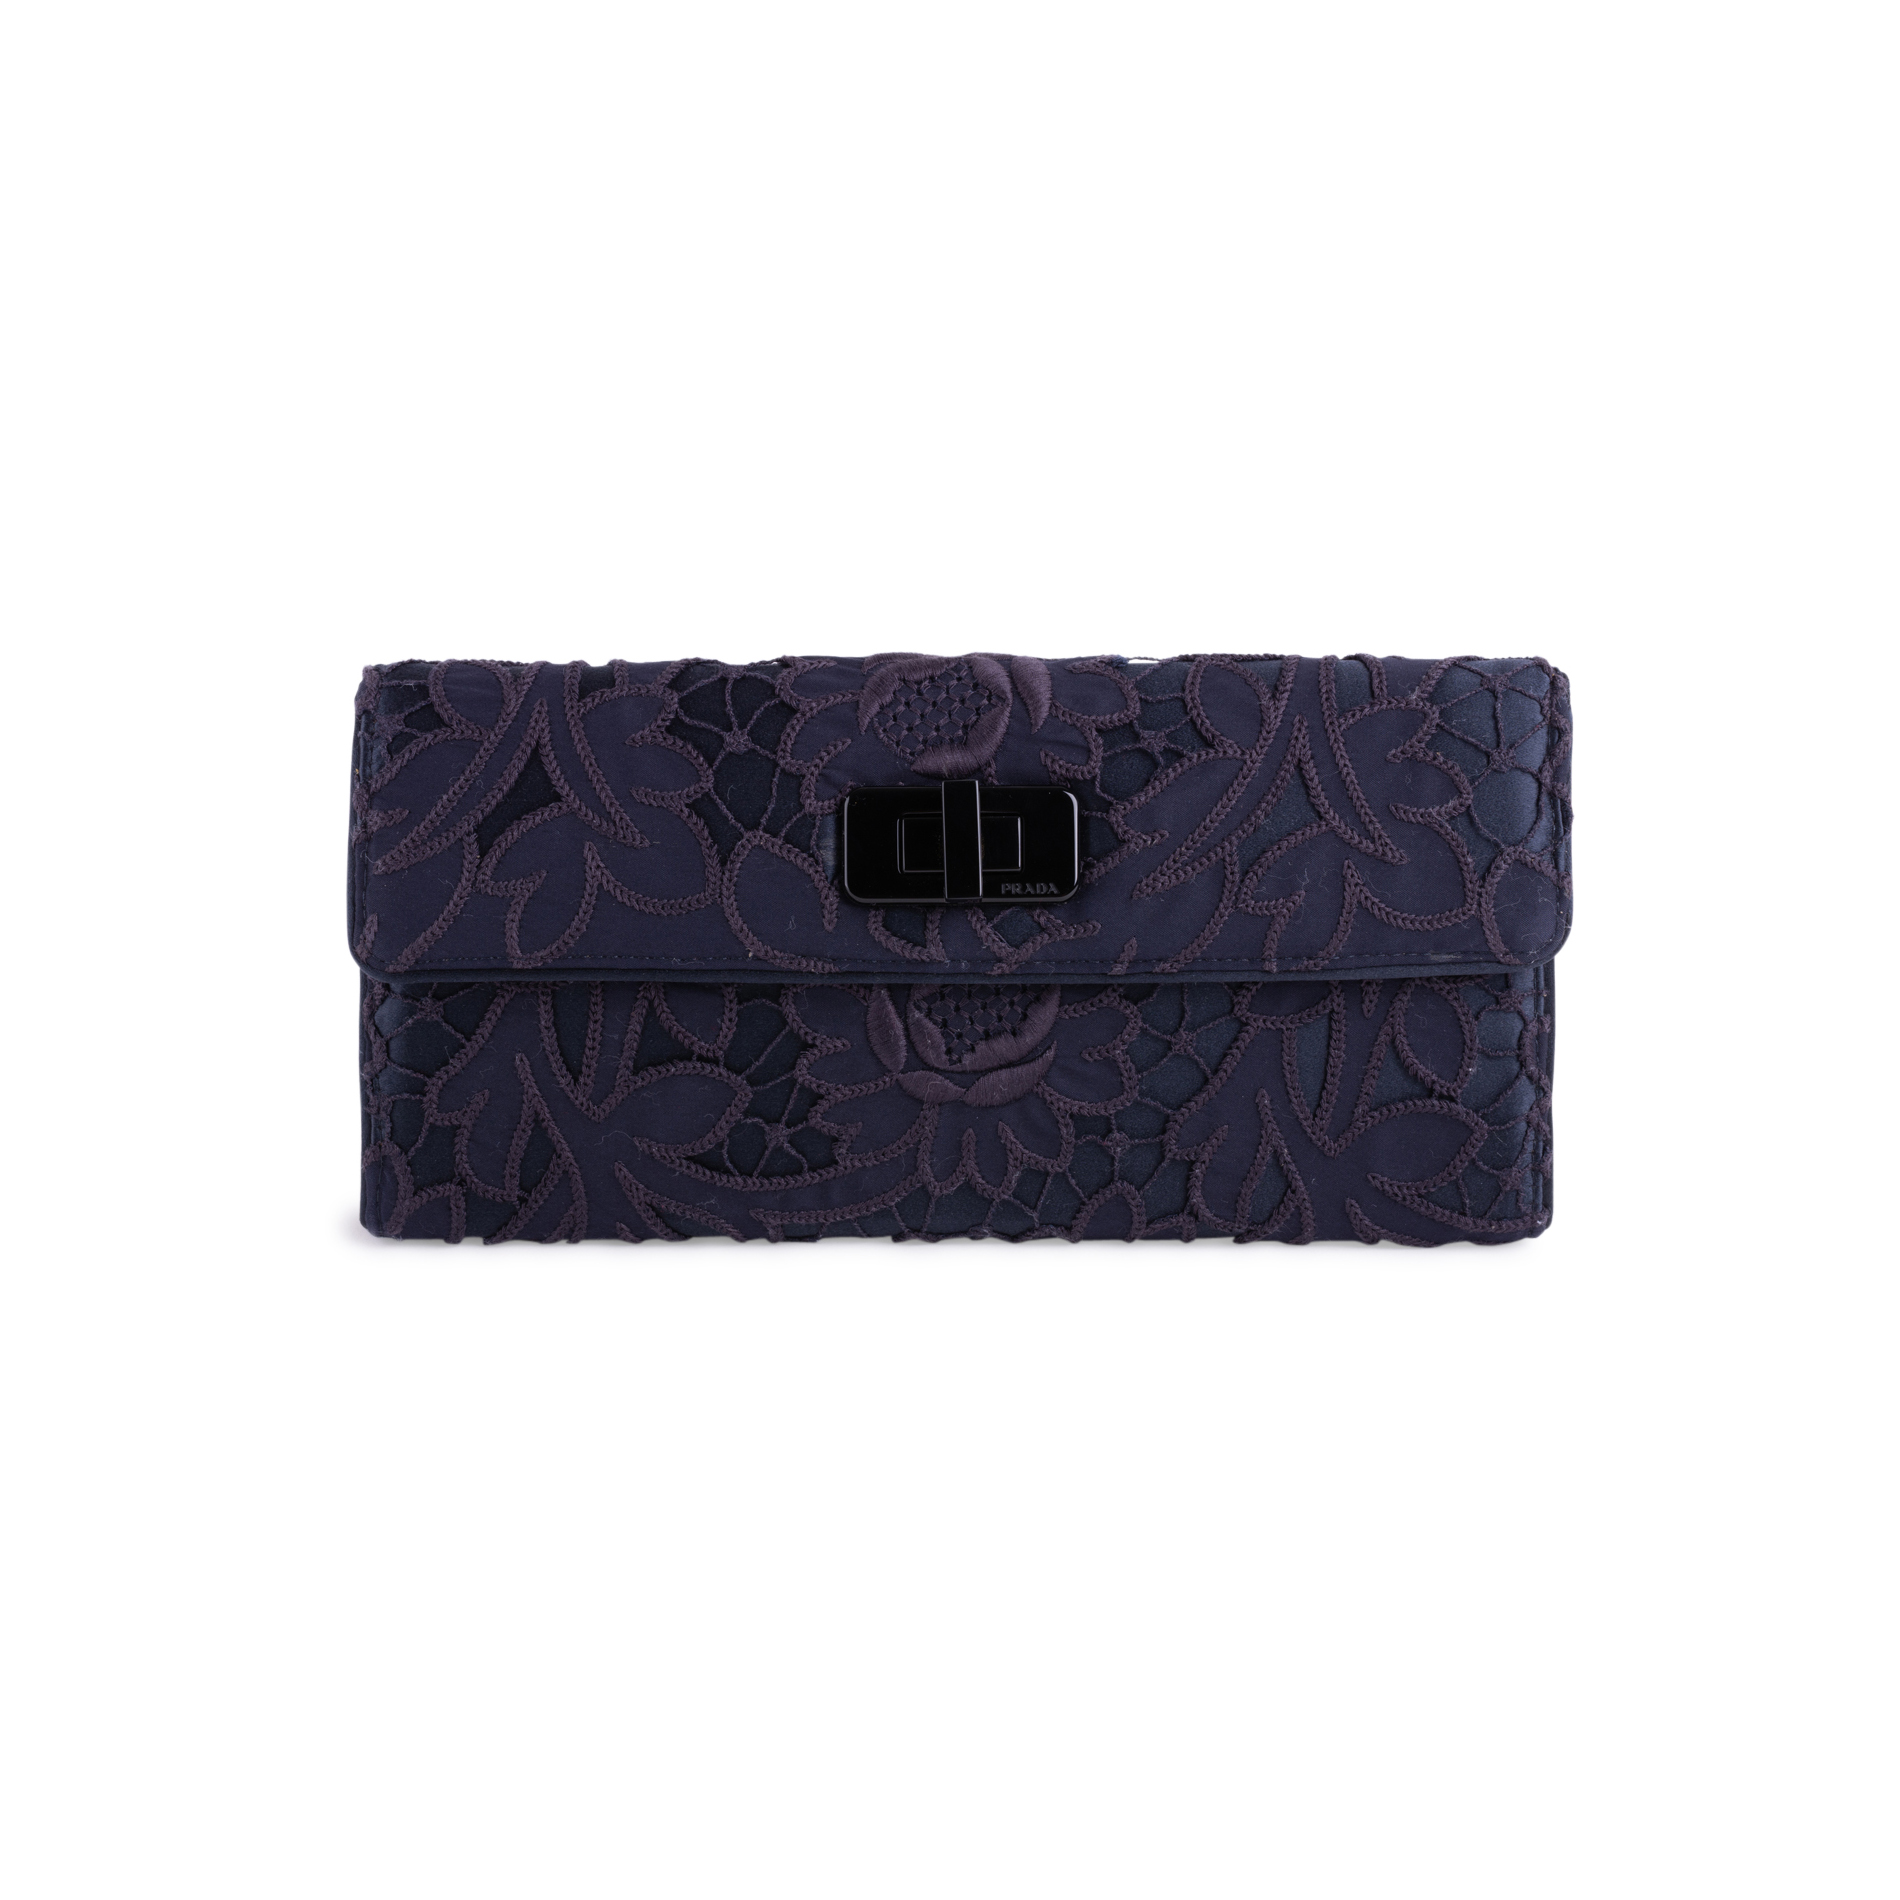 8b65f185d3f4 Authentic Second Hand Prada Floral Lace Clutch (PSS-247-00100) | THE FIFTH  COLLECTION